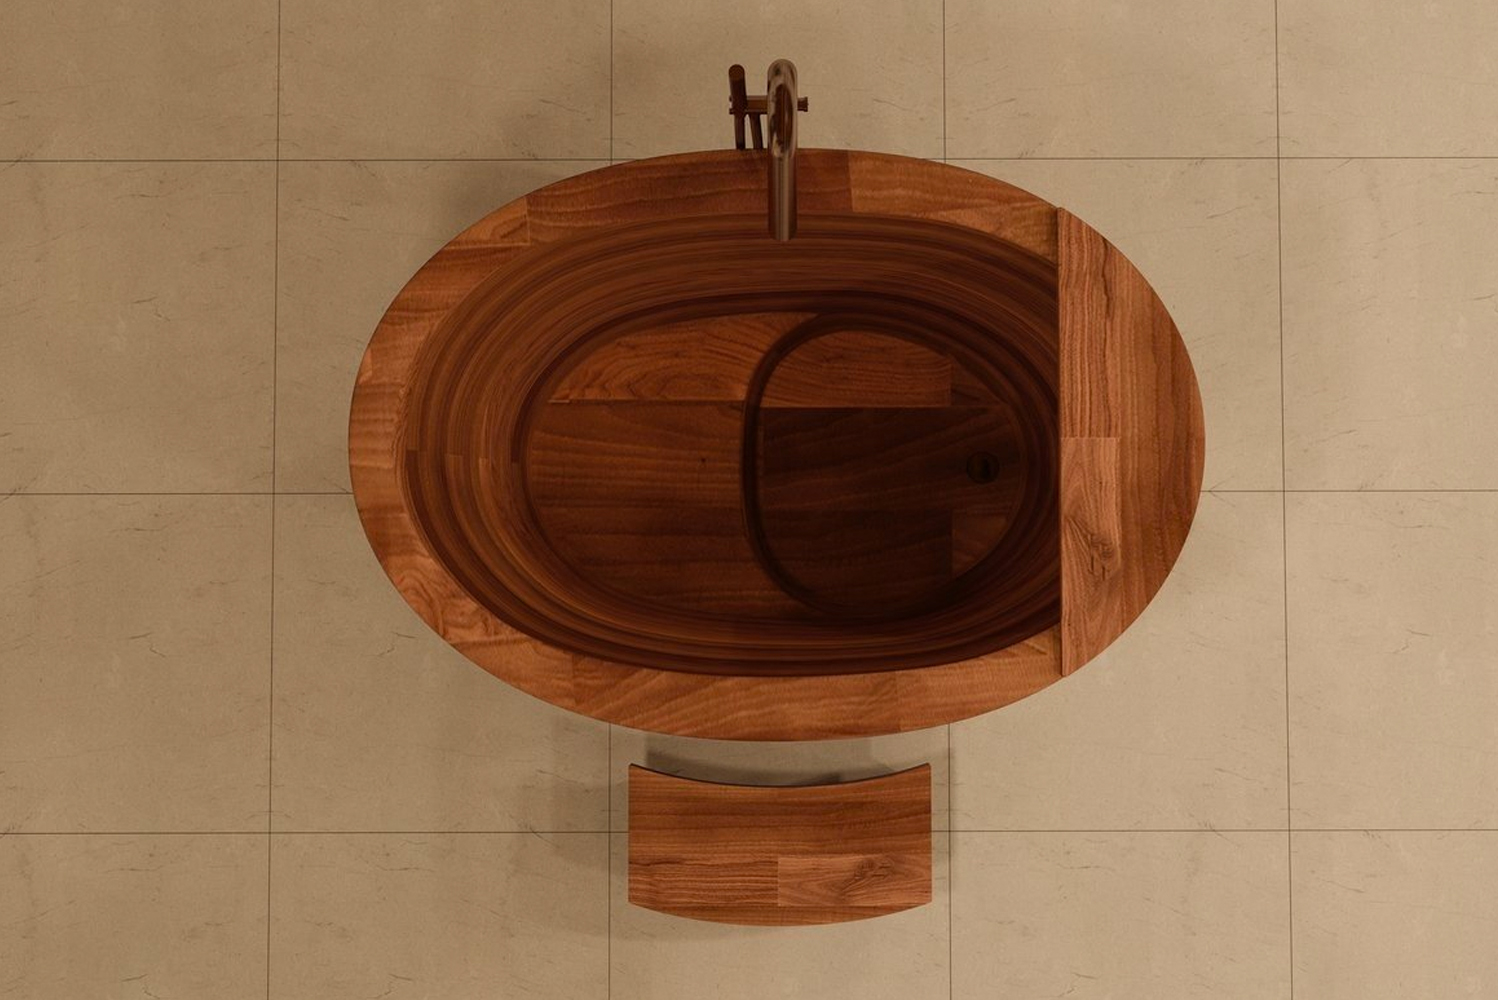 Different woods are available, too. In addition to walnut, bathers may choose from maple, ash, padouk, oak or sapele.